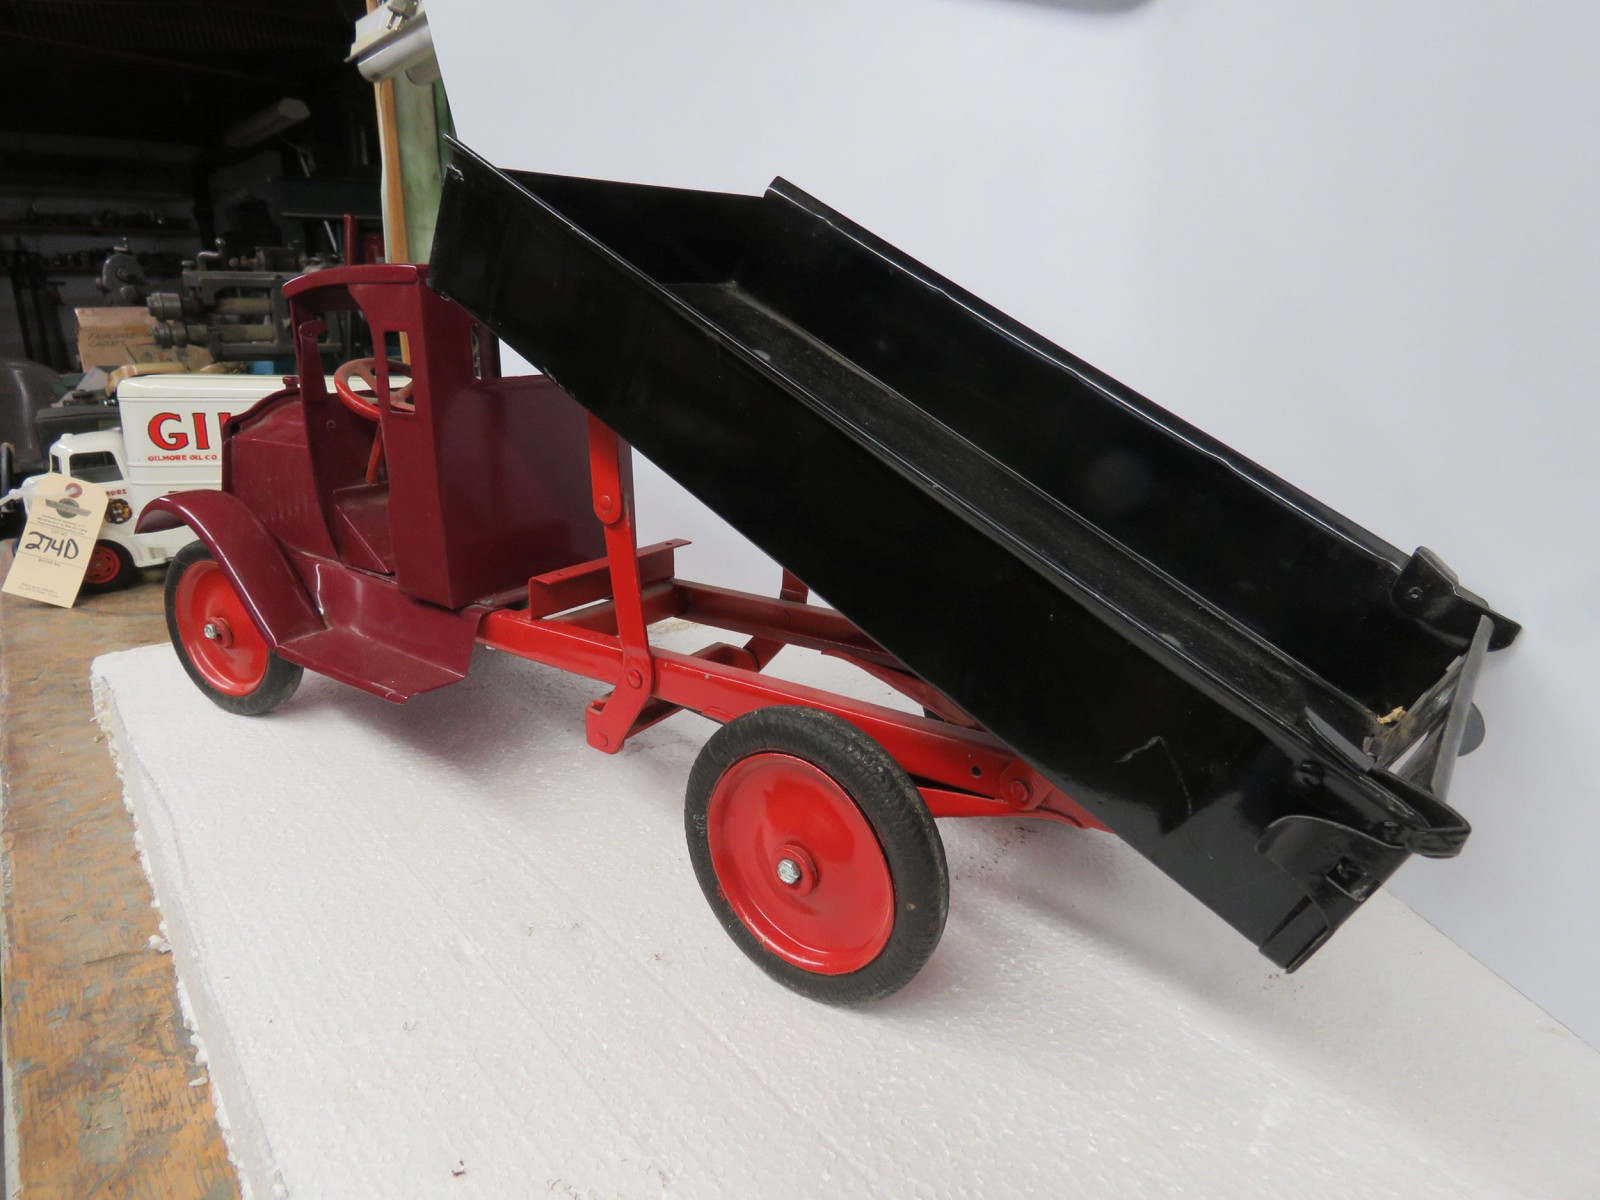 Buddy L Pressed Tin Truck and Trailer Gilmore Oil - Image 3